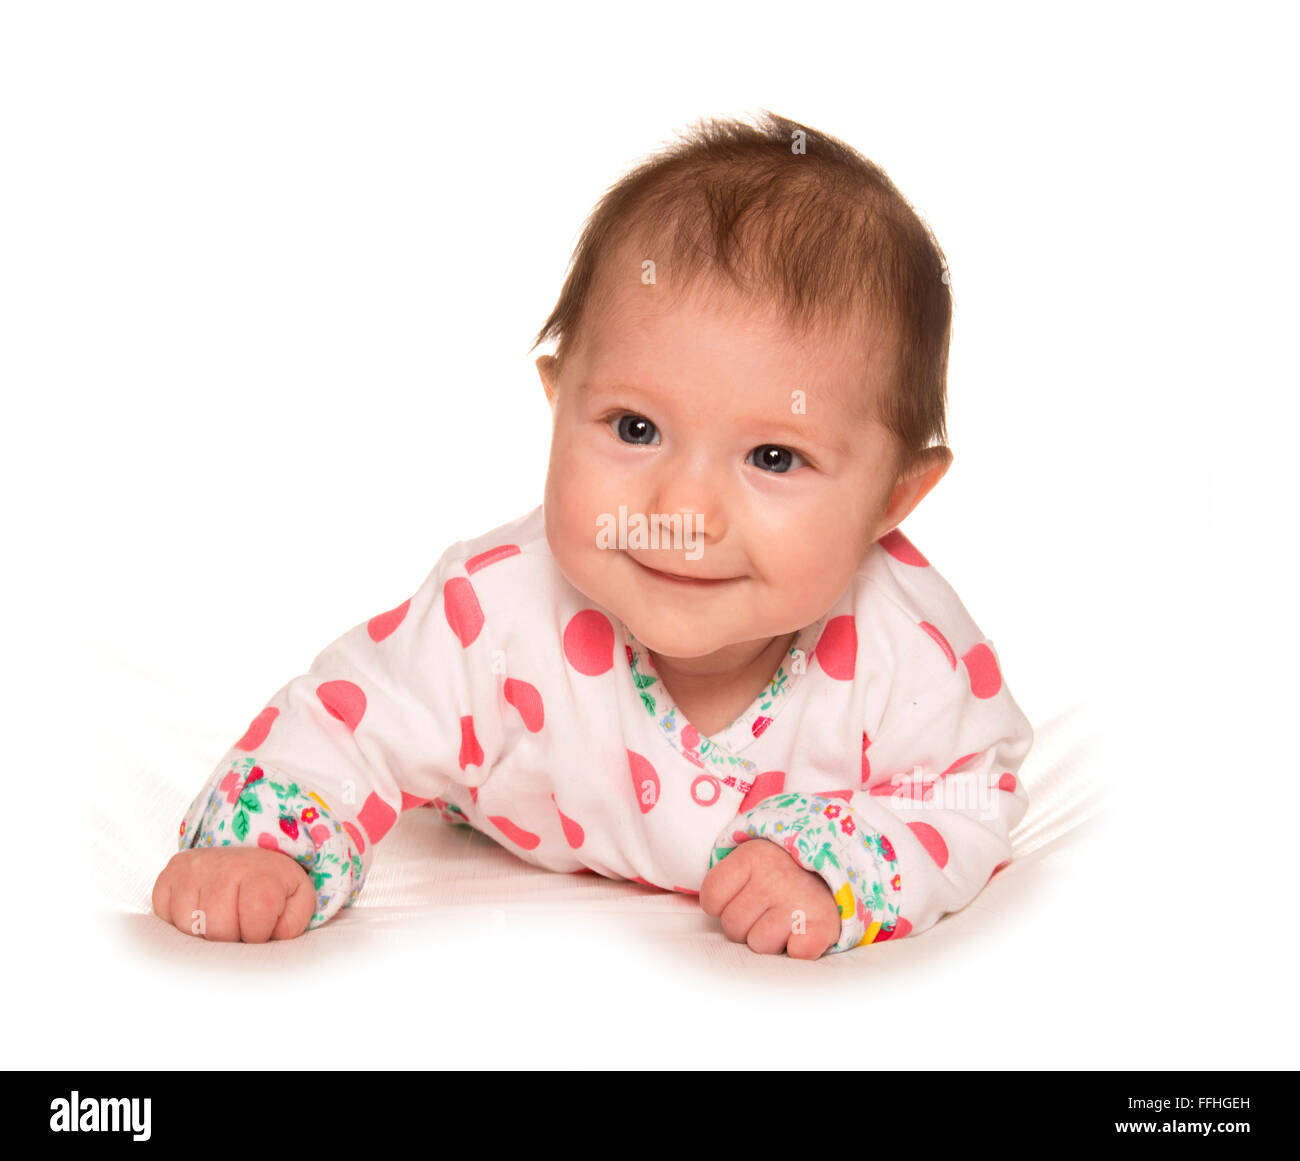 Cute Baby 3 Months Old Stock Photos Amp Cute Baby 3 Months